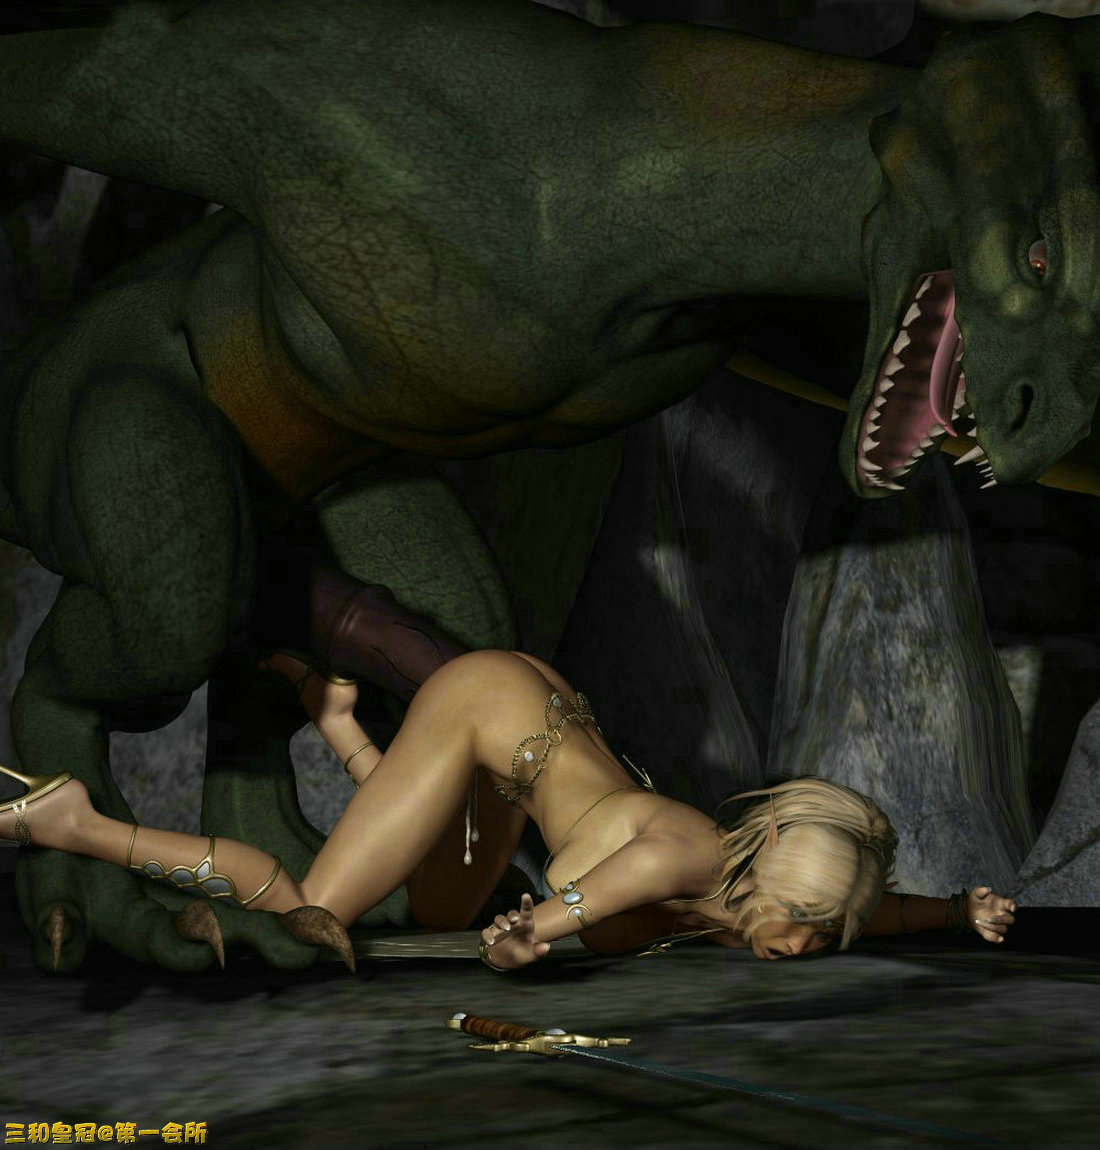 3d porn dragon and a girl naked porn star